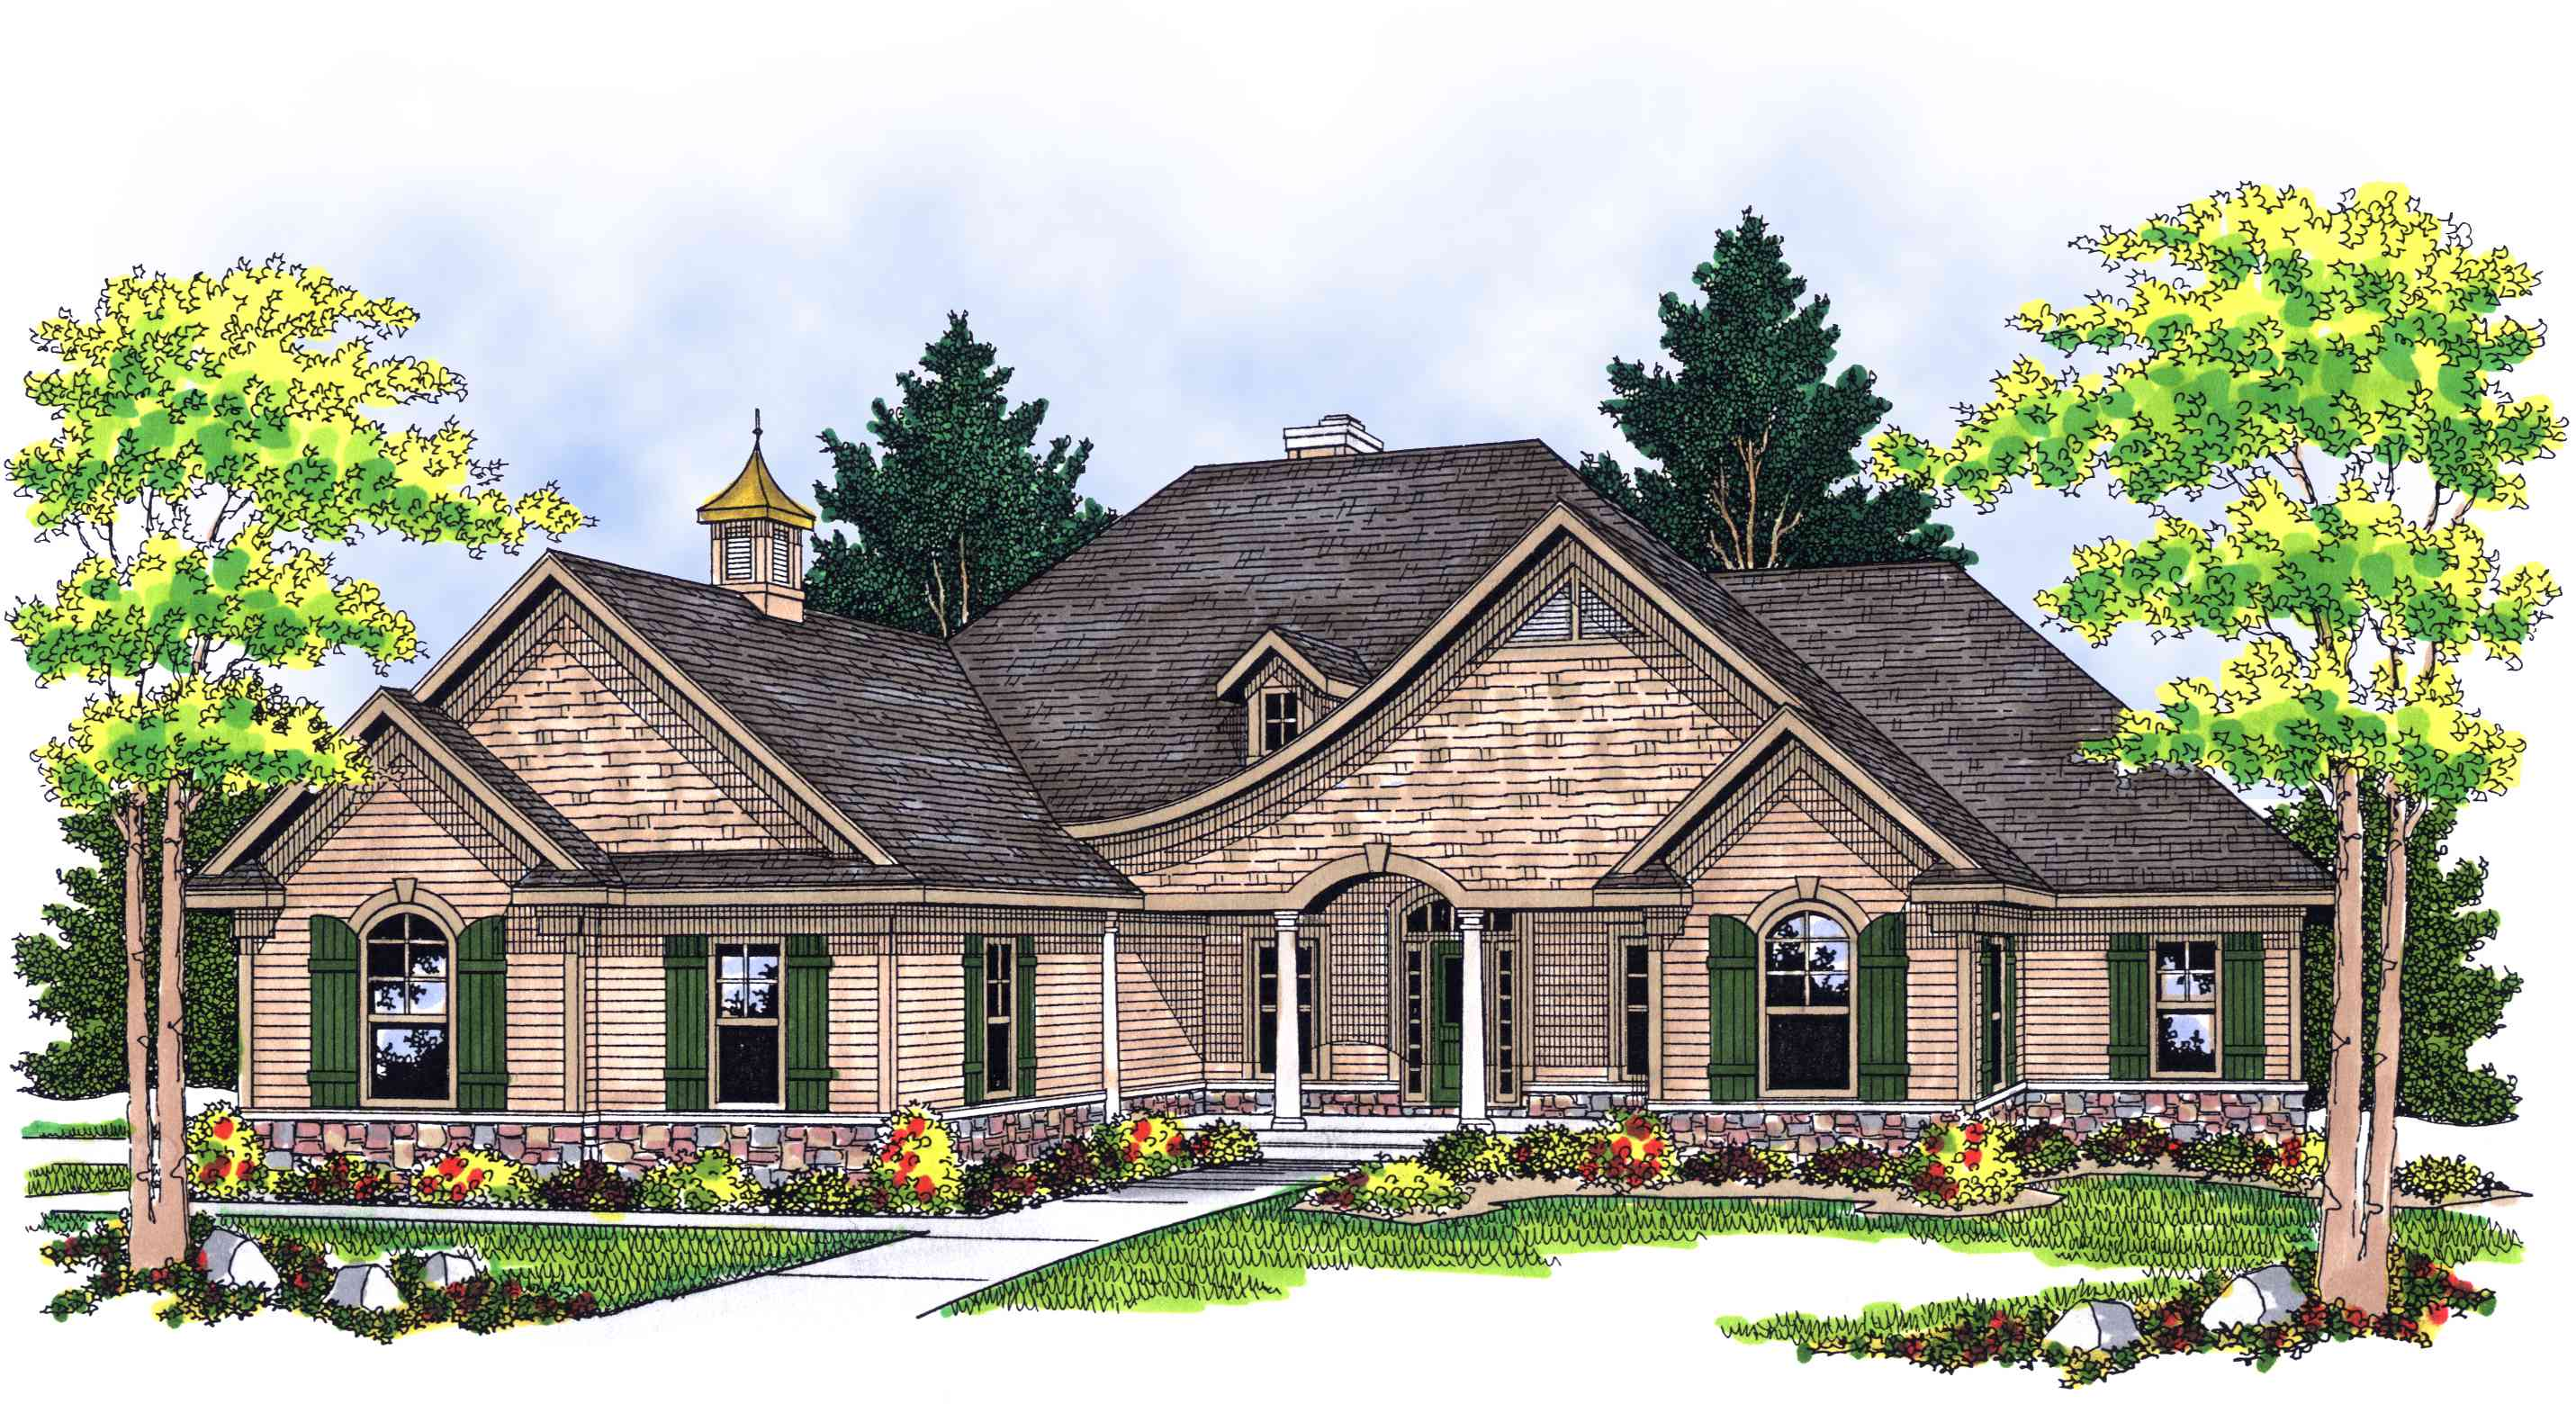 Tradition with a twist 8974ah architectural designs for Architecturaldesigns com house plan 56364sm asp